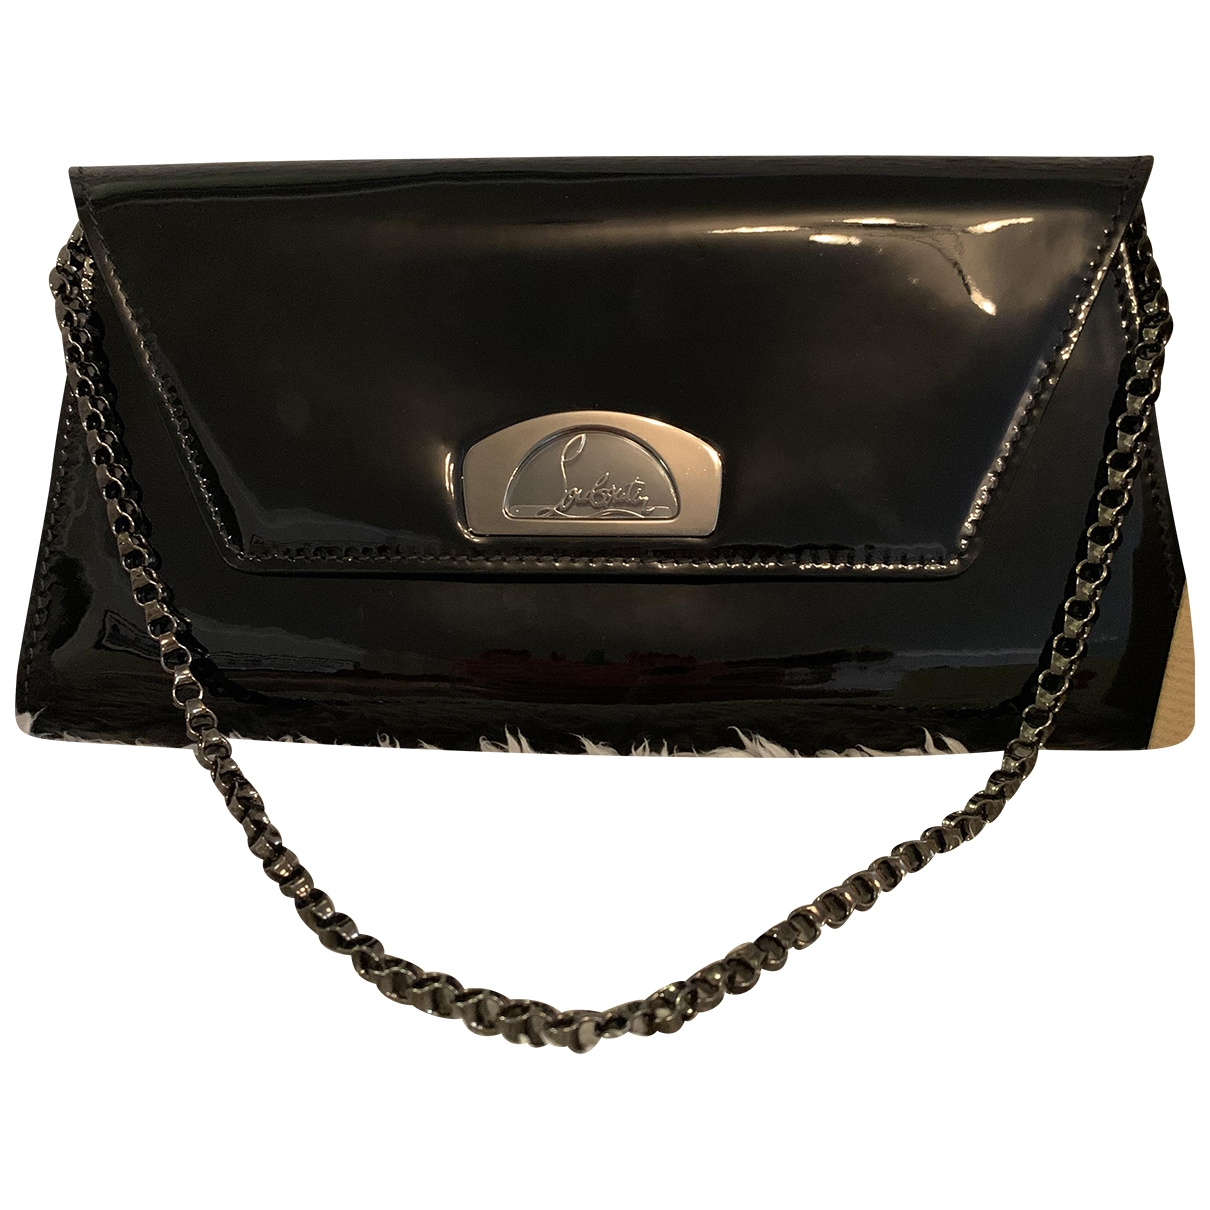 Christian Louboutin \N Black Patent leather Clutch bag for Women \N